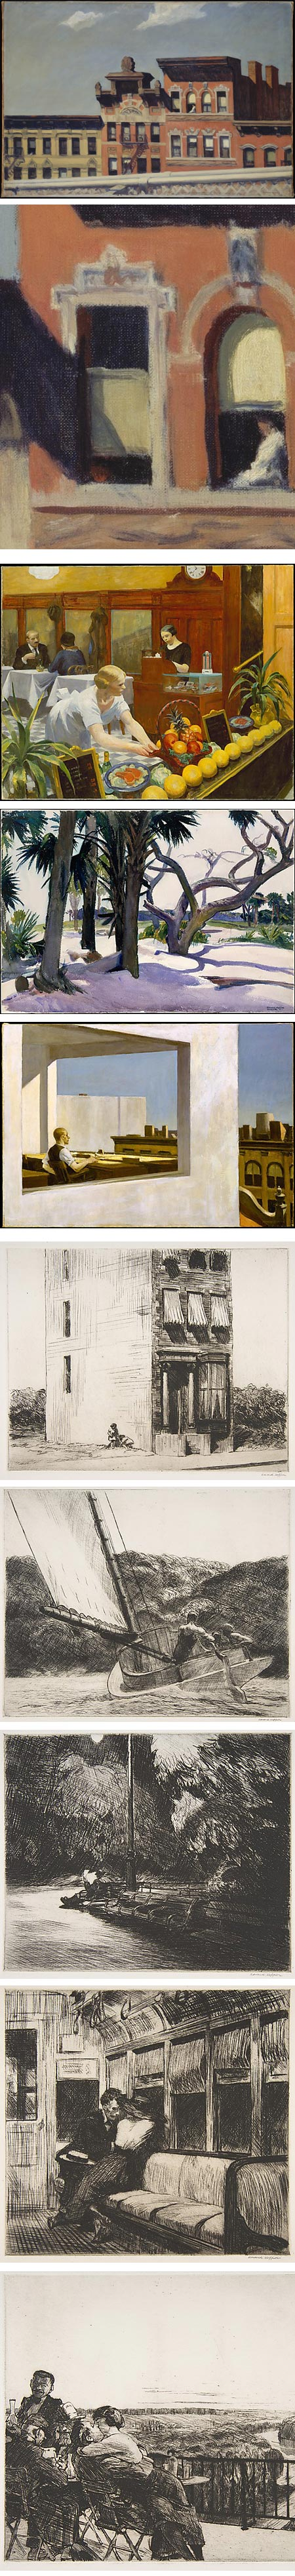 Edward Hopper on Met Museum website